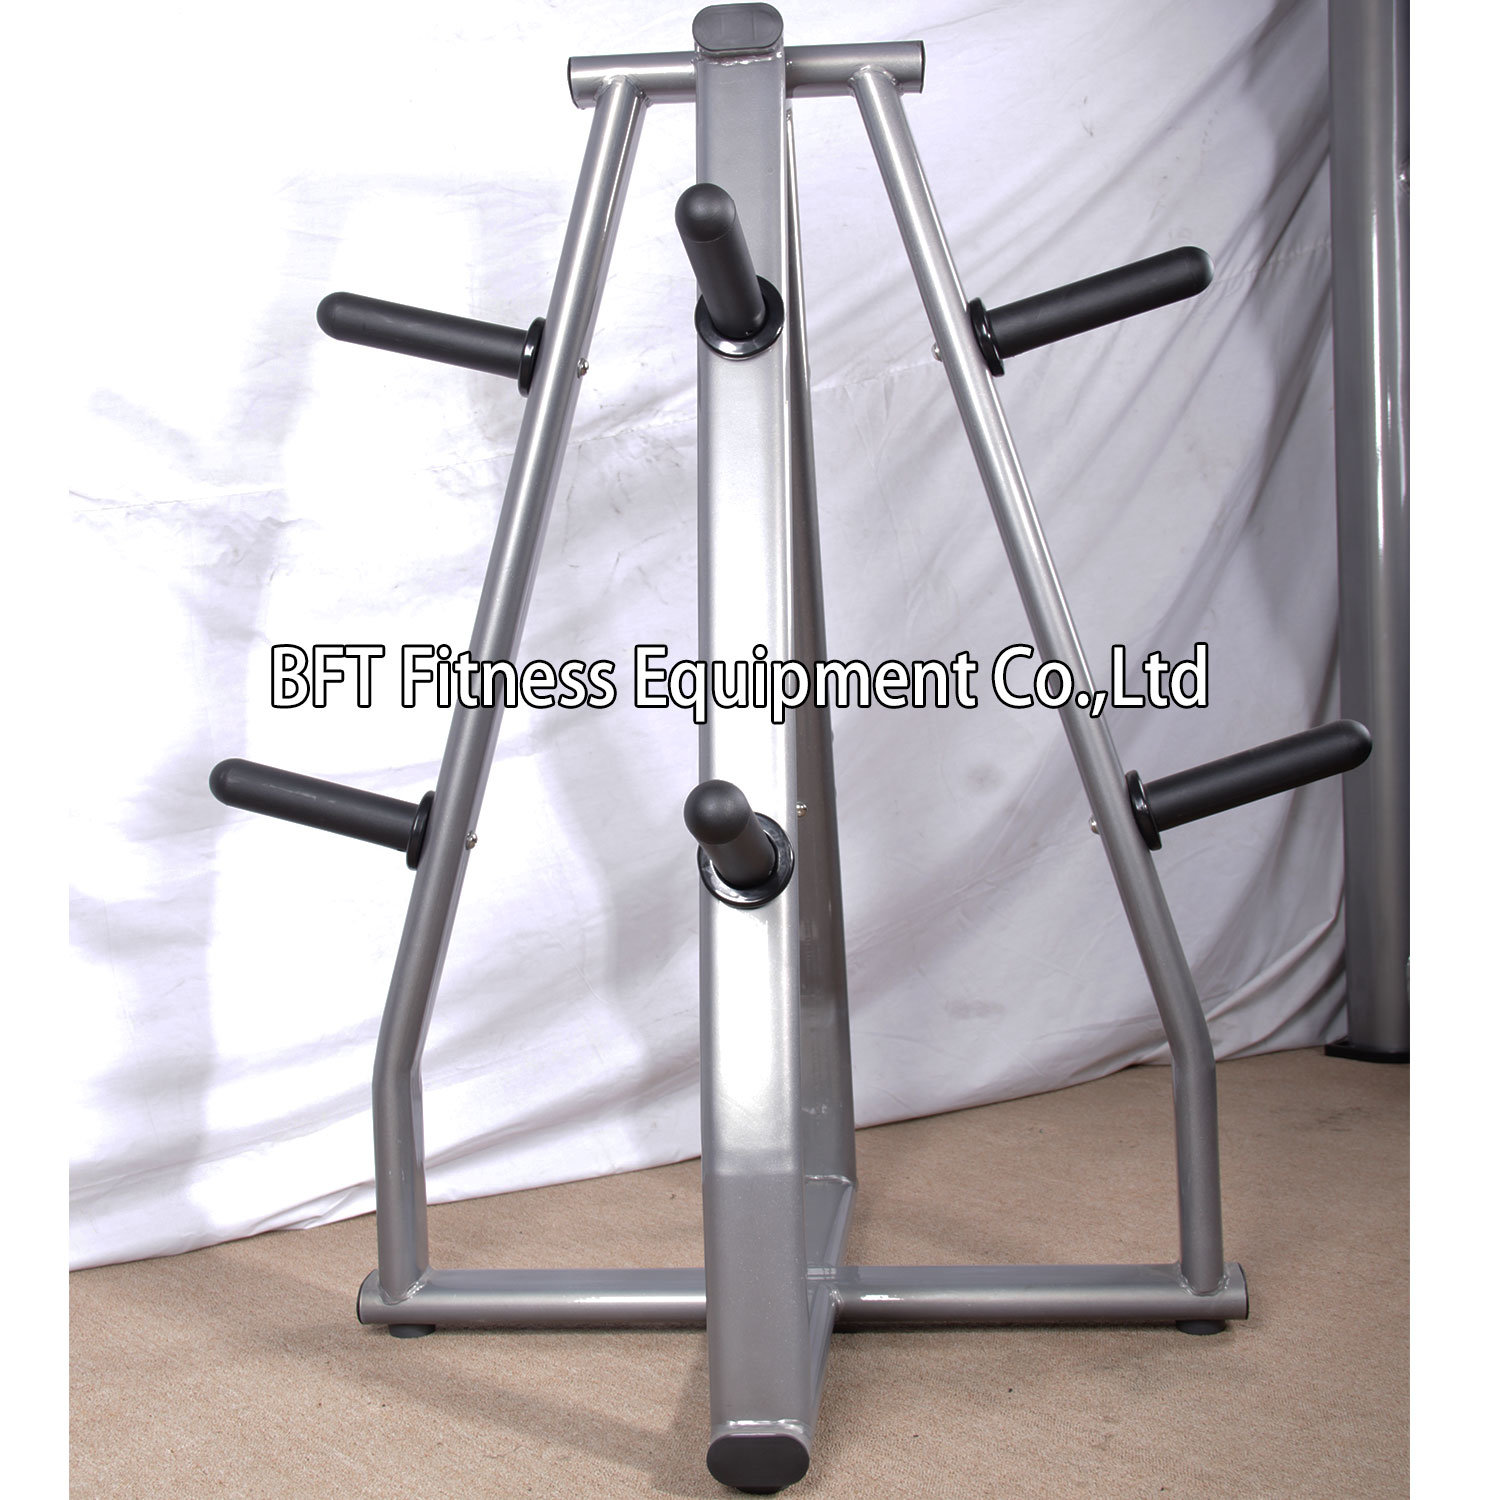 China Heavy Duty Weight Plate Holder Vertical Weight Plate Rack Weight Storage China Weight Plate Rack And Weight Plate Tree Price